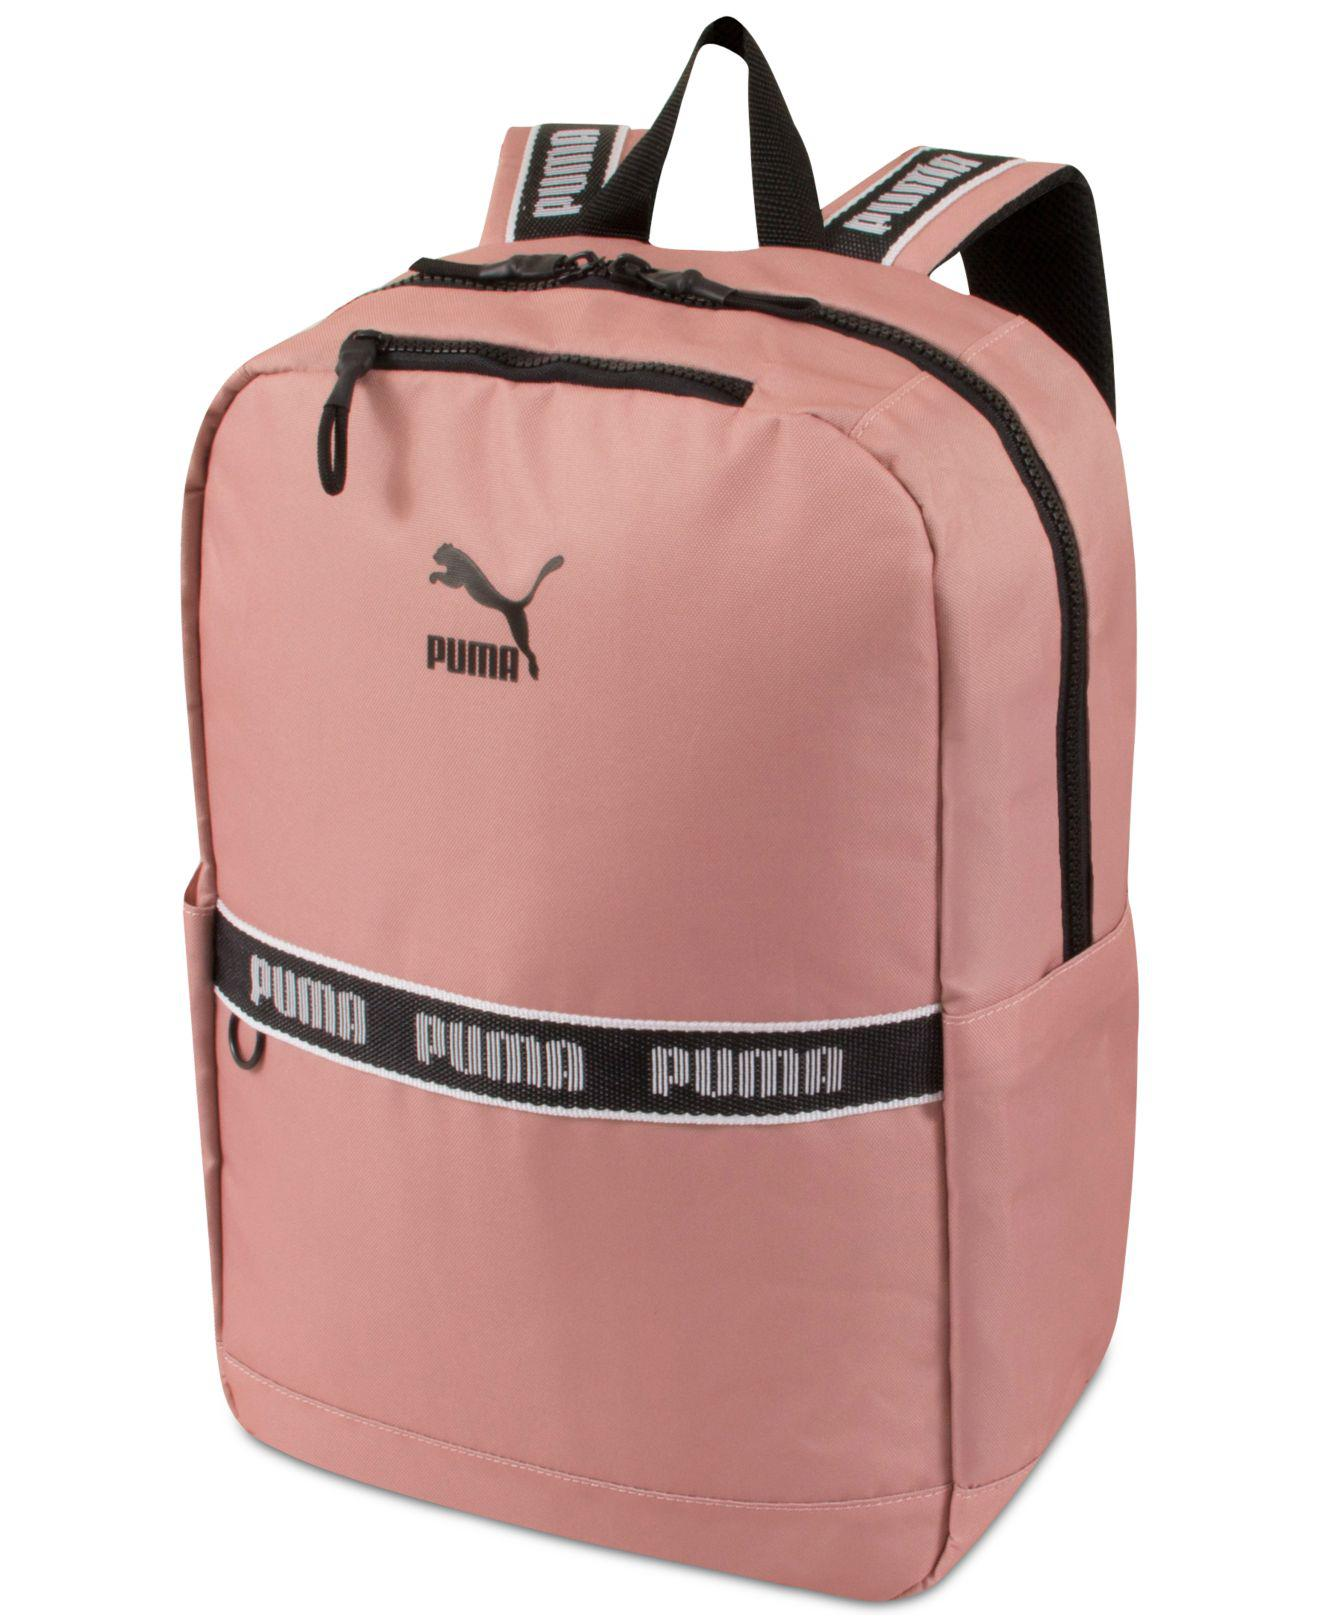 5e55e41726b Lyst - PUMA Linear Canvas Backpack in Pink